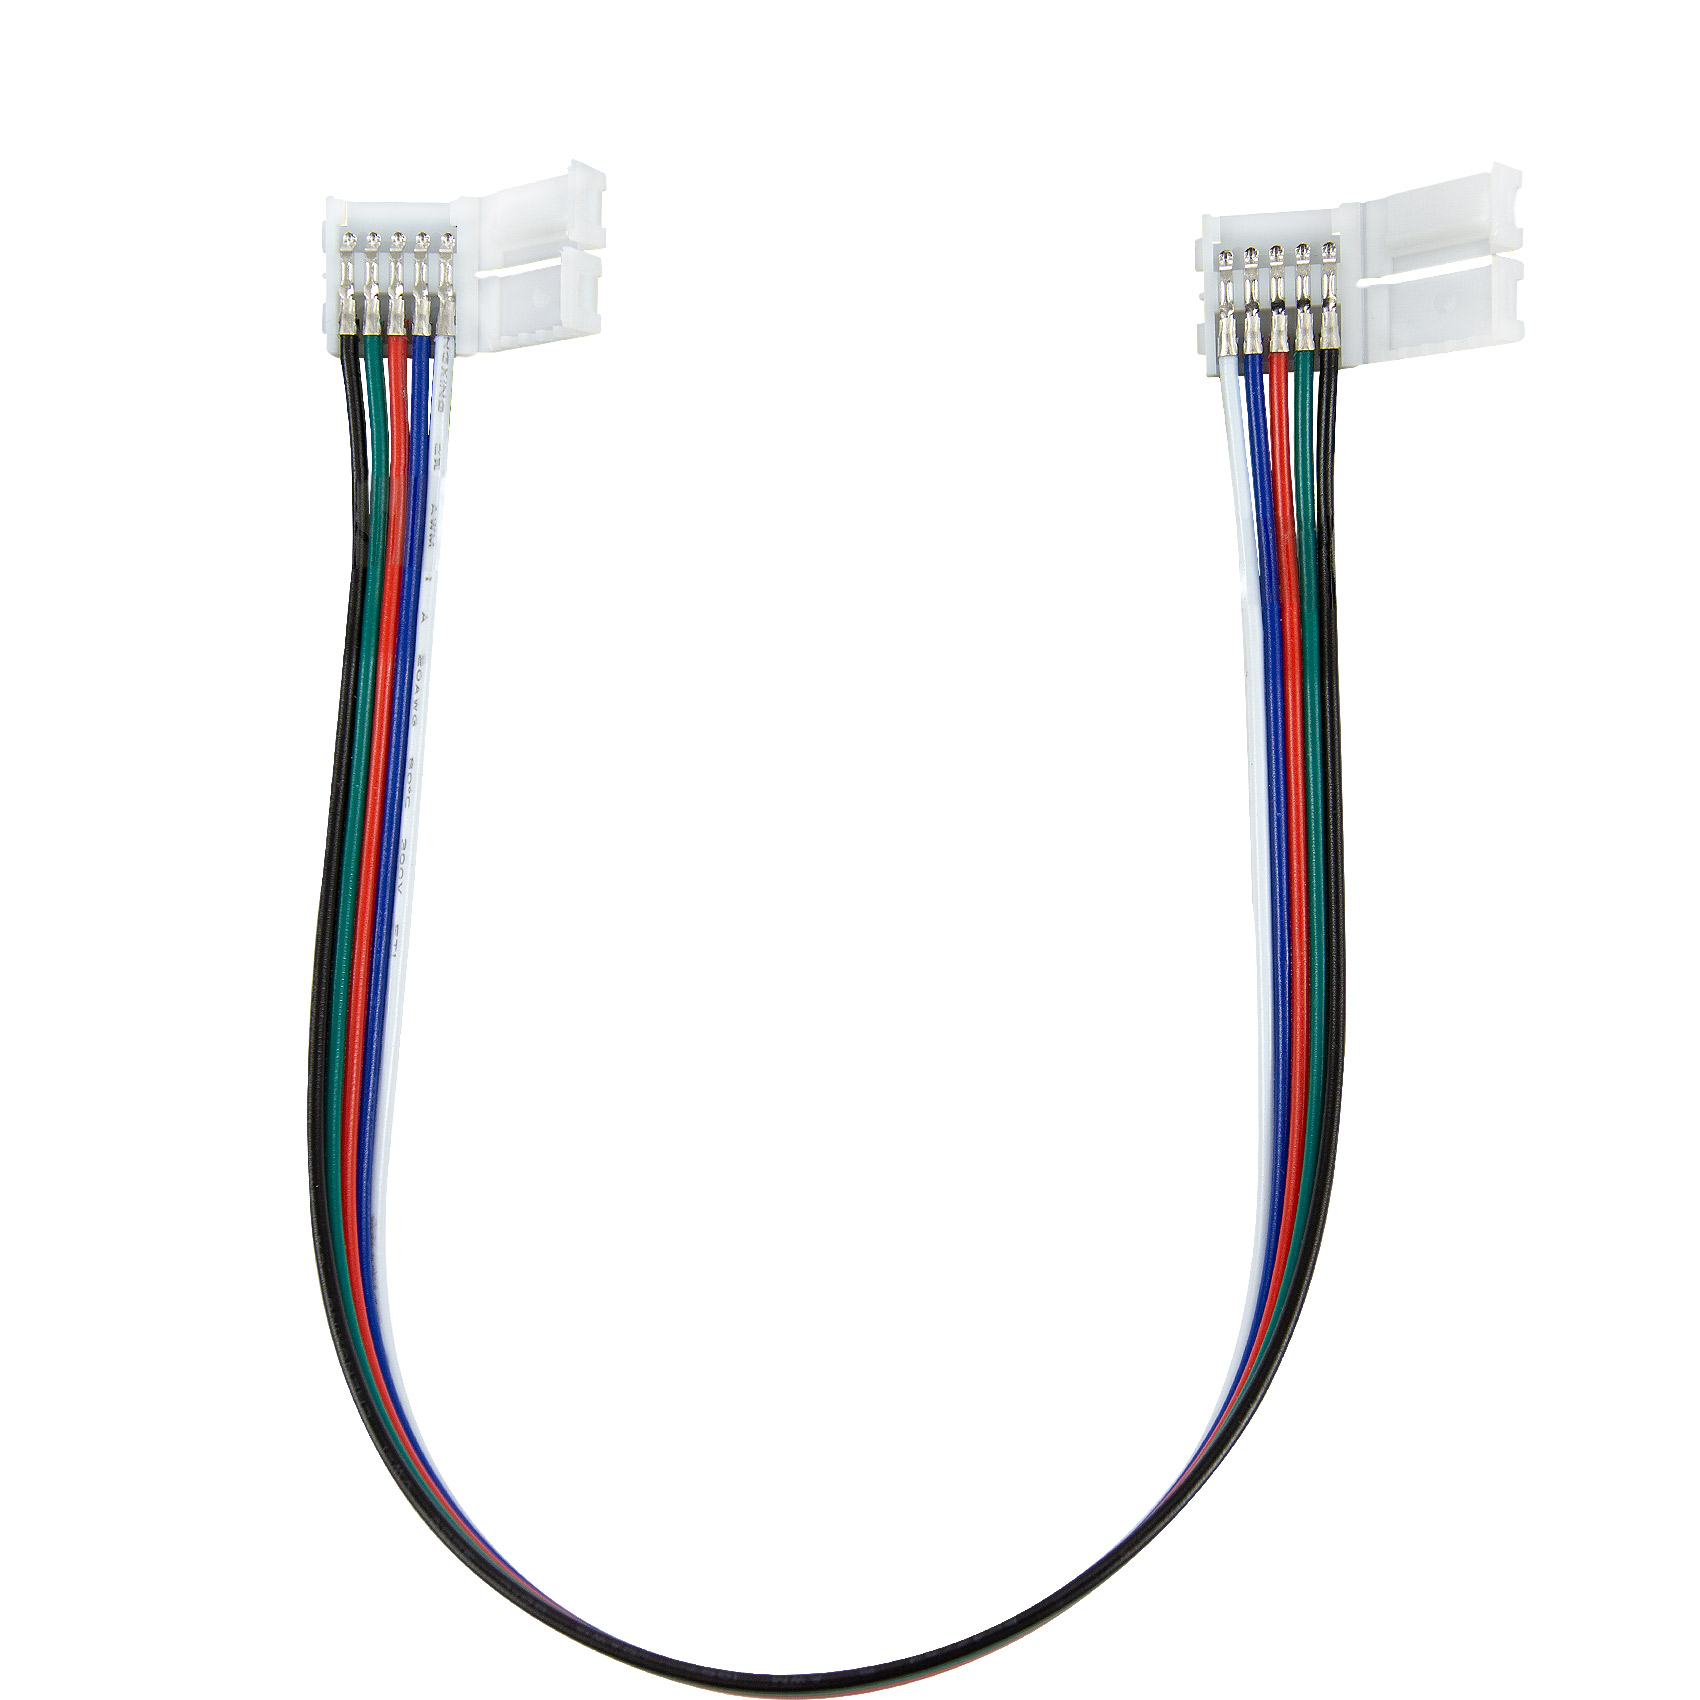 hight resolution of 5050 led strip wiring